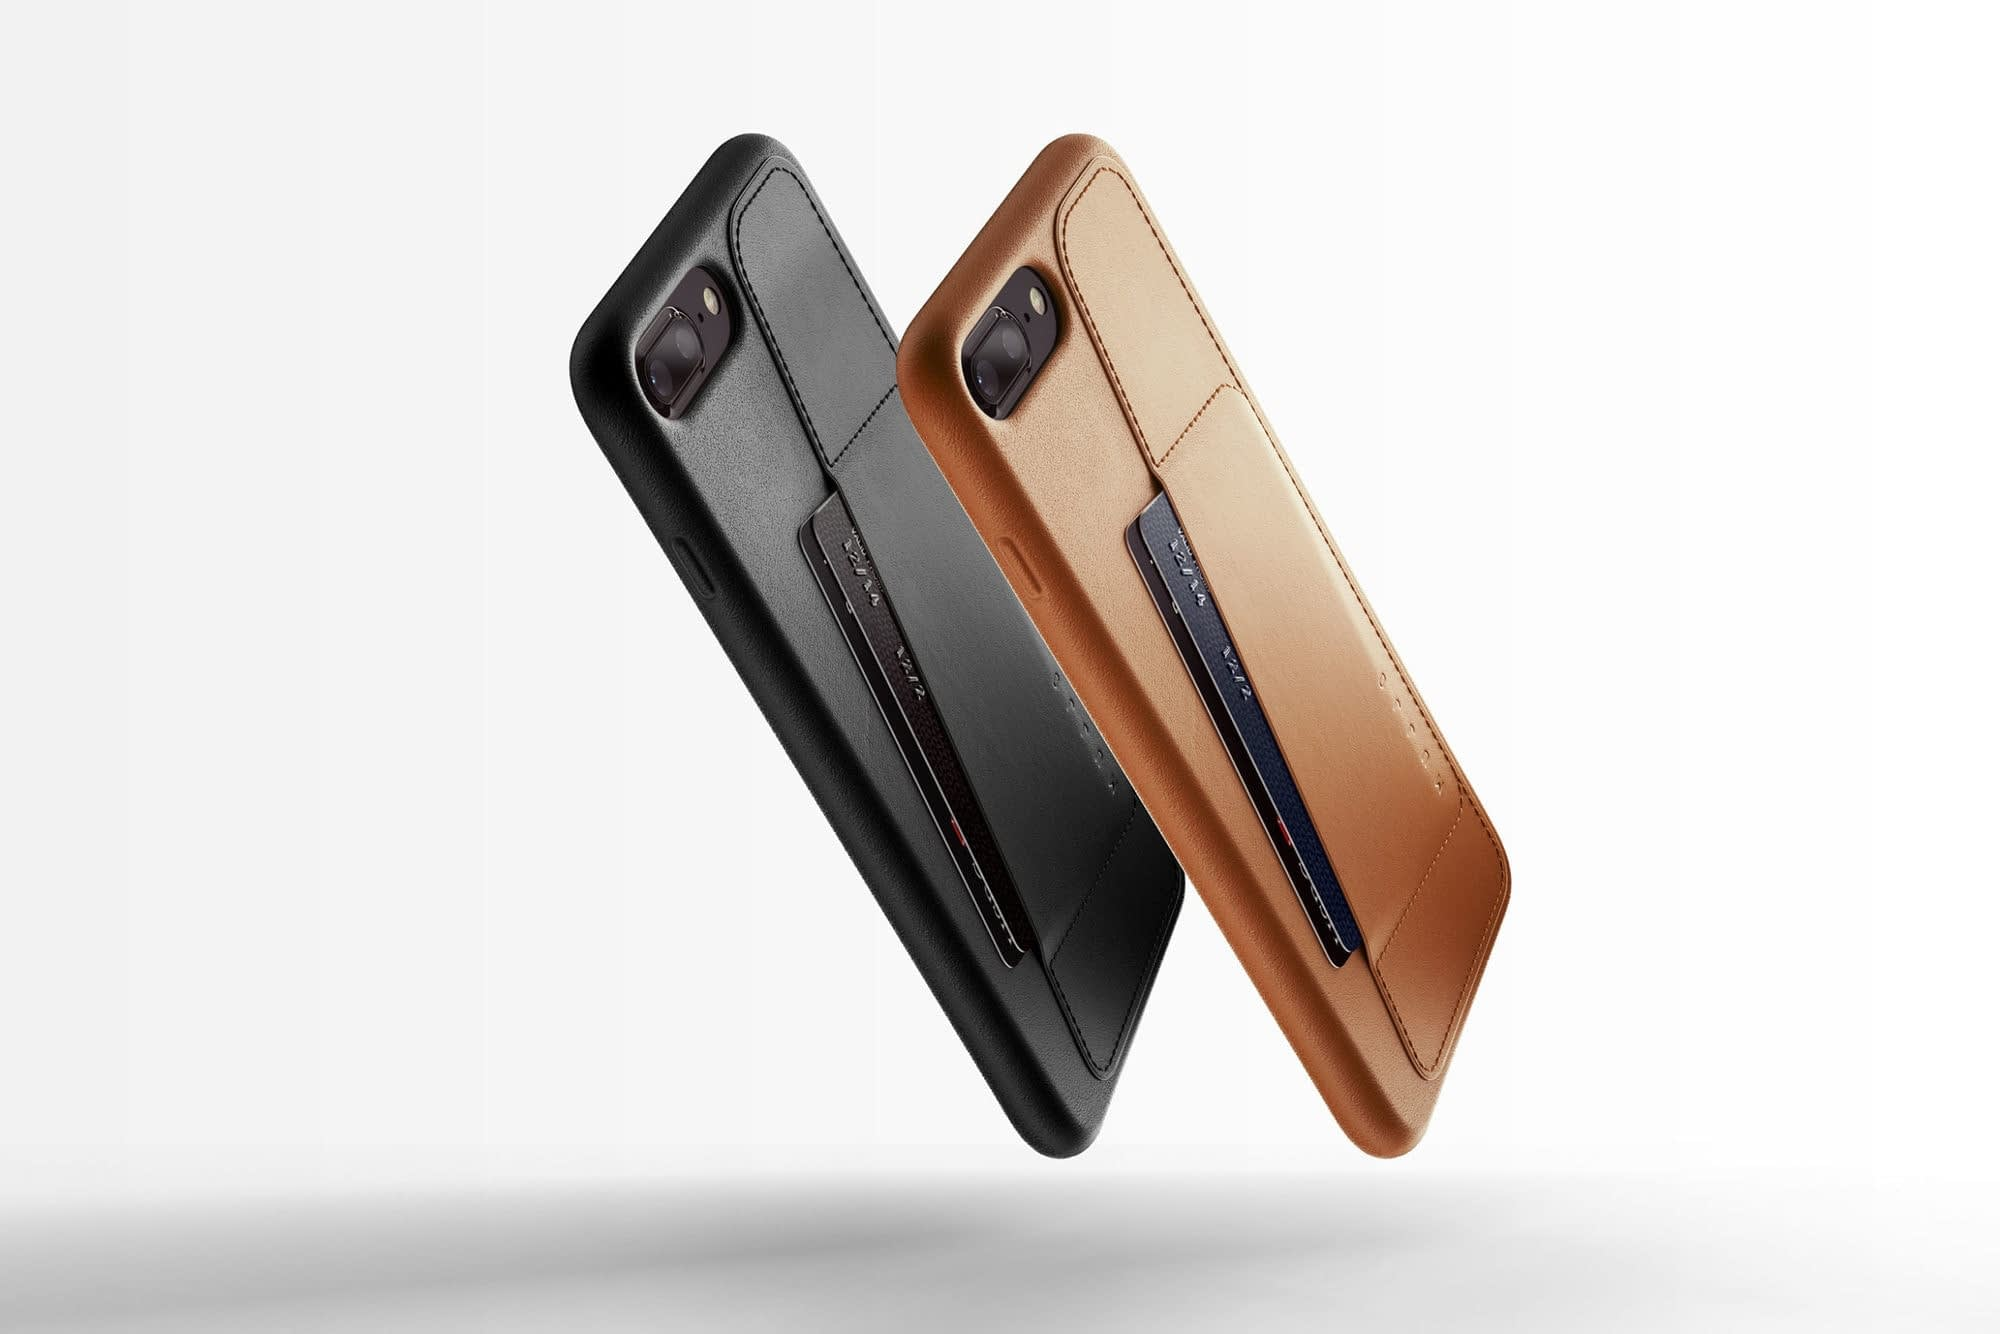 Full leather wallet case for iPhone 8 Plus Black Line up 01